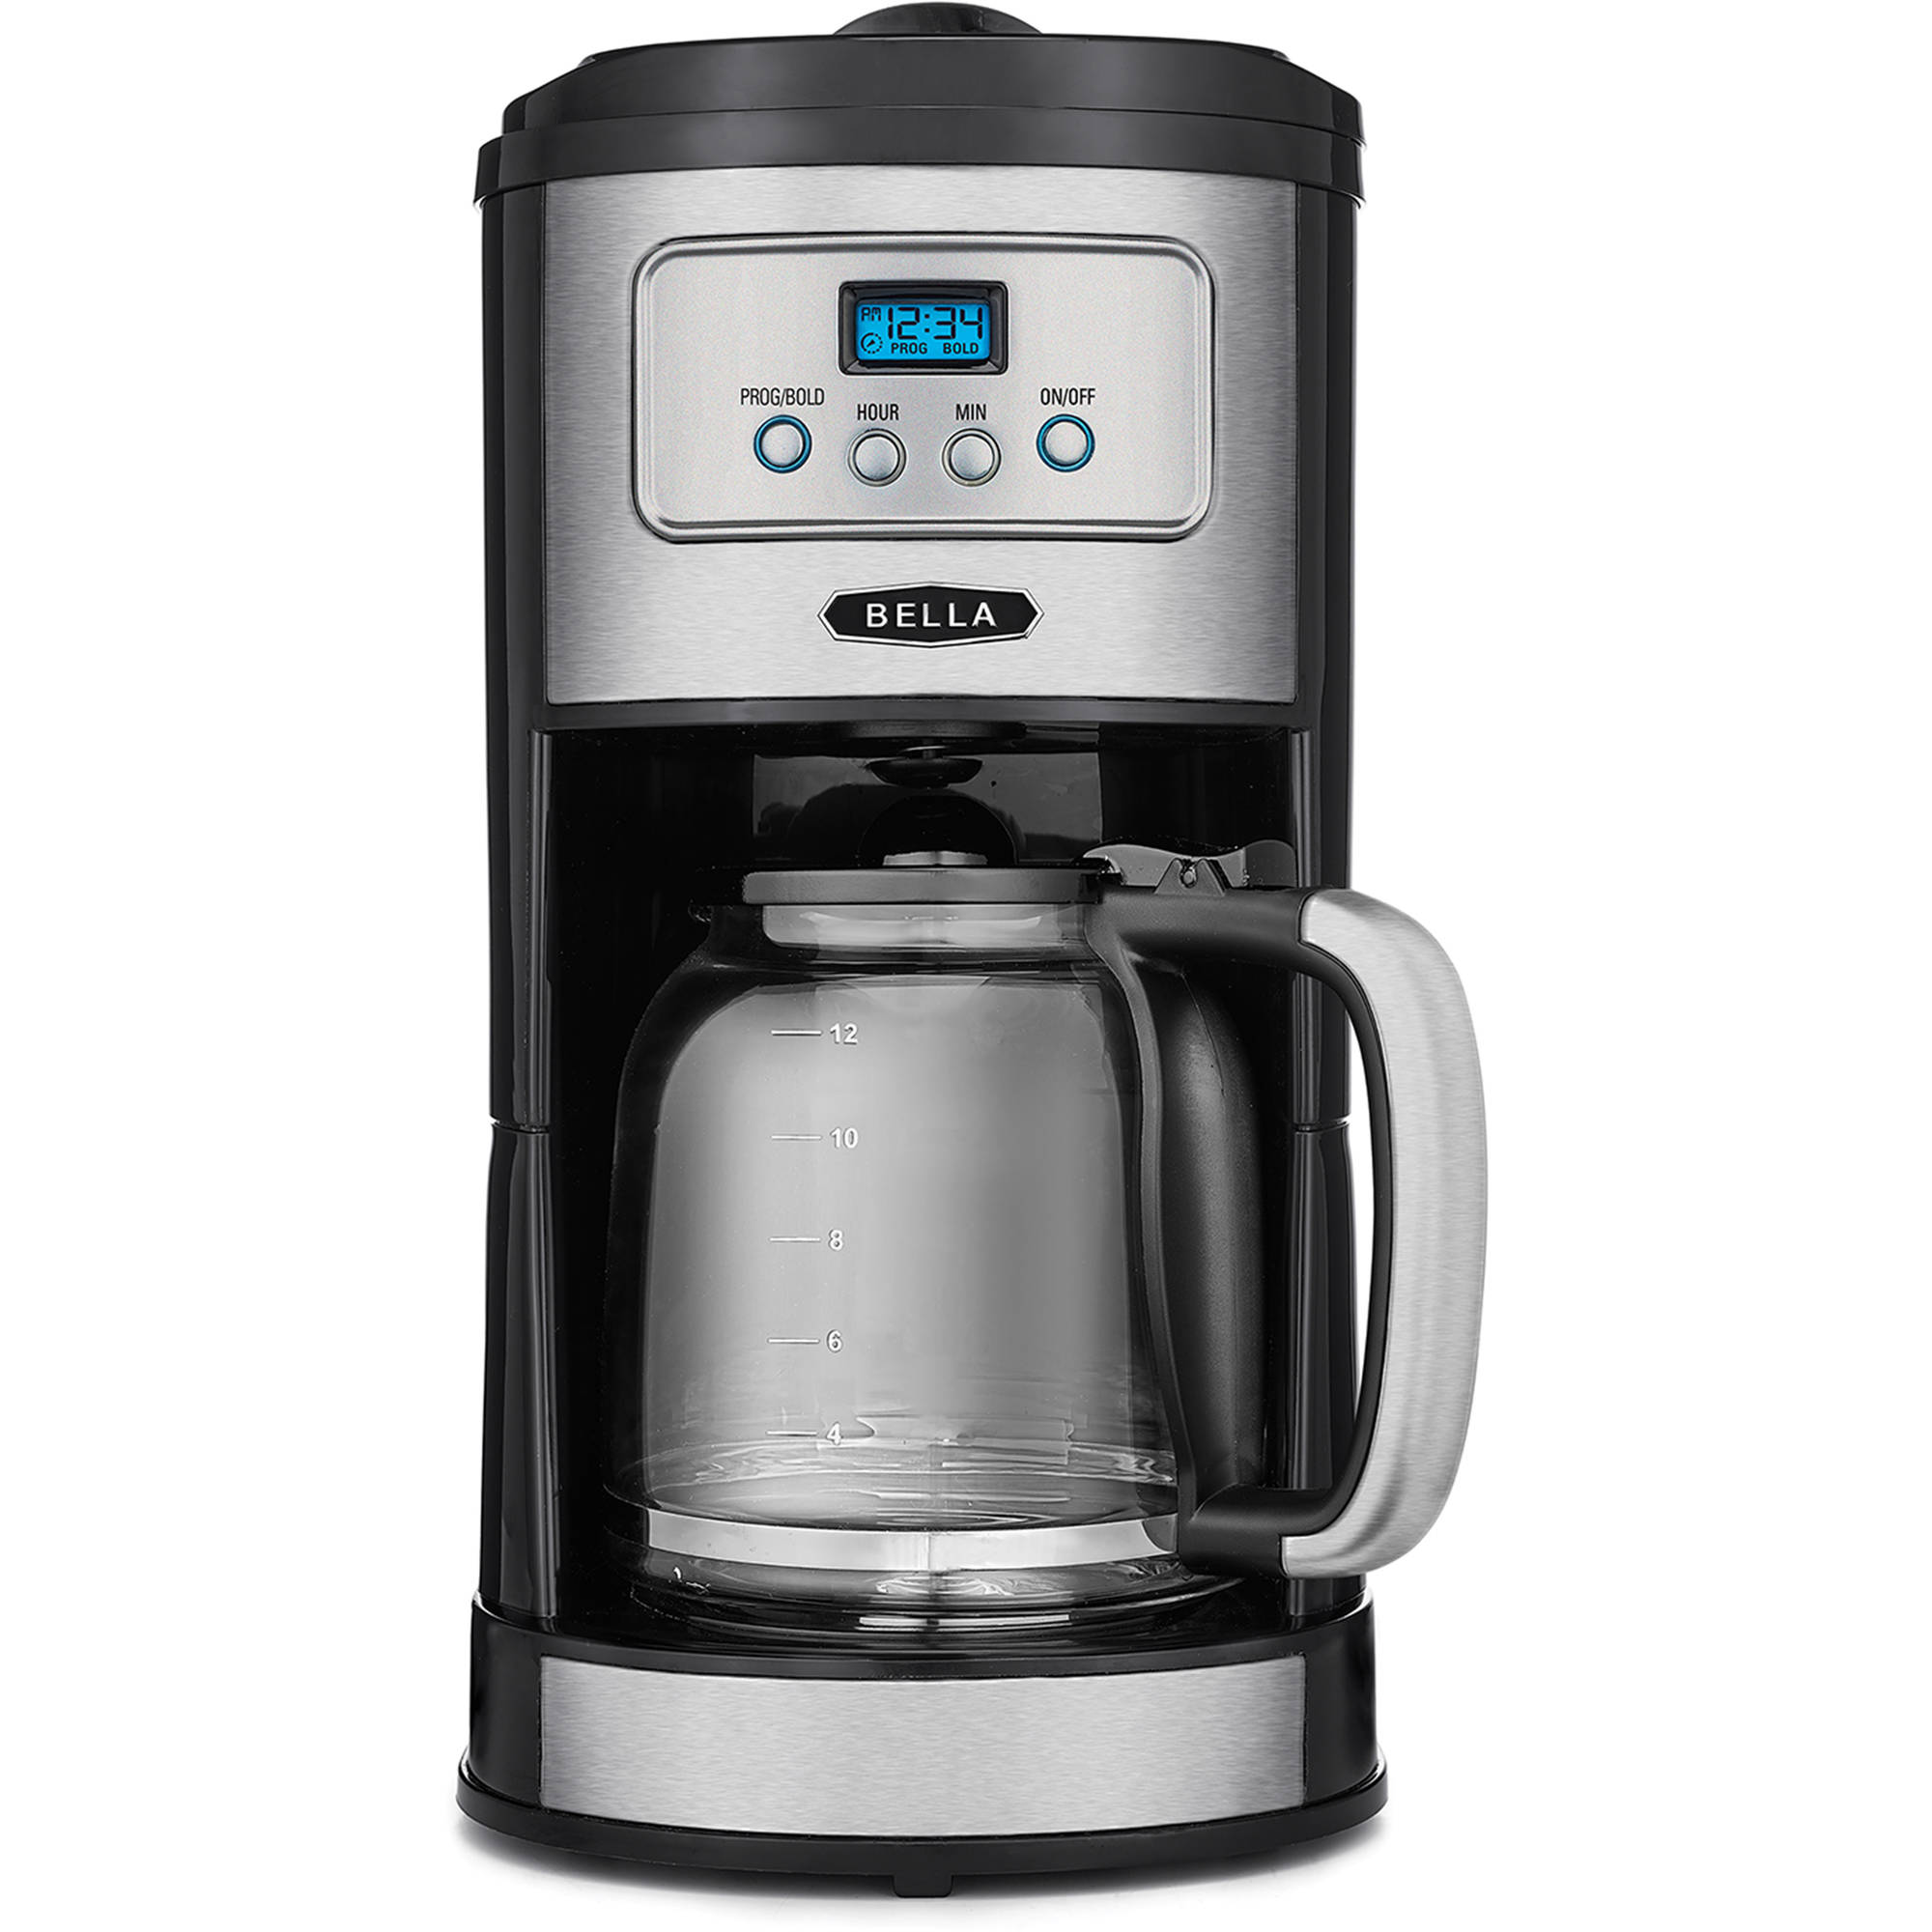 Bella 12-Cup Programmable Coffee Maker